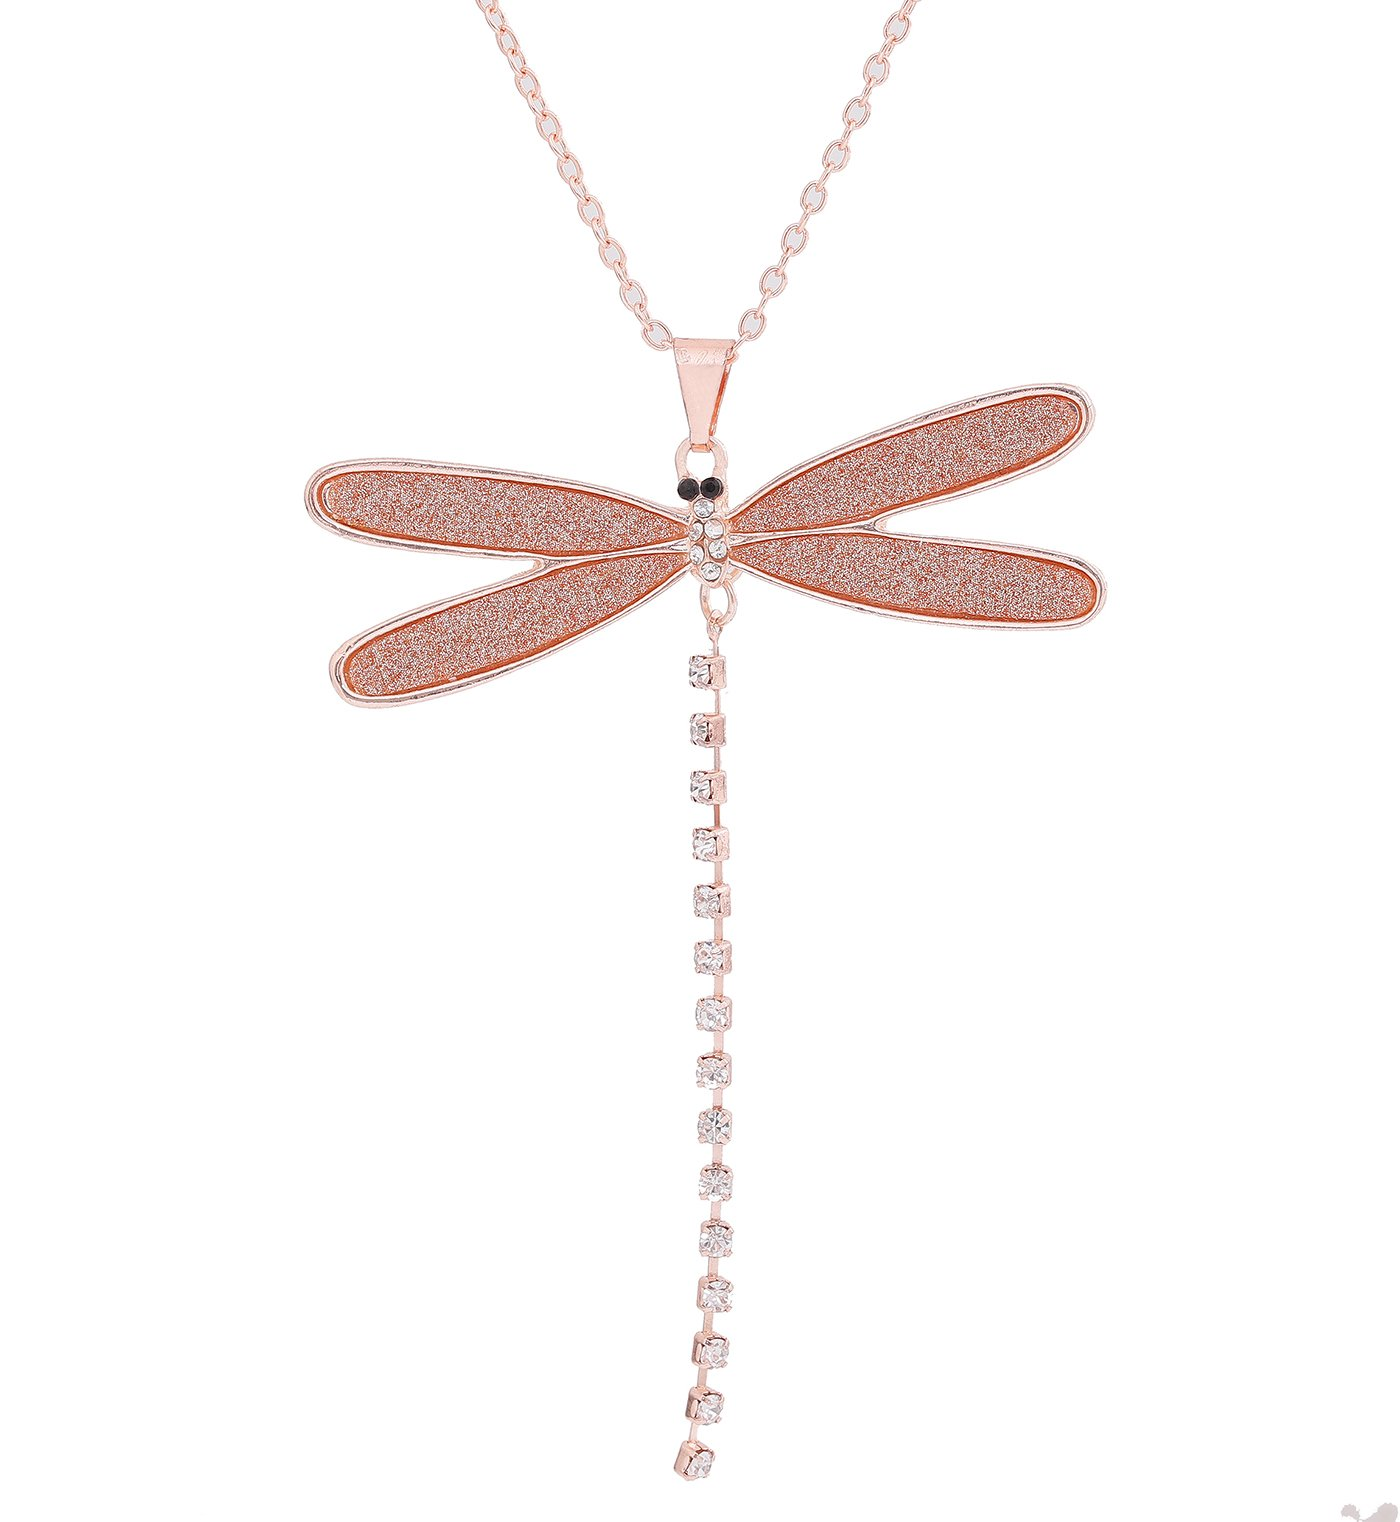 YEYA Long Necklace For Women Girls Druzy Dragonfly Pendant Necklace Charm Rhinestone Tassel Necklace Statement Jewelry Necklaces (rose gold)